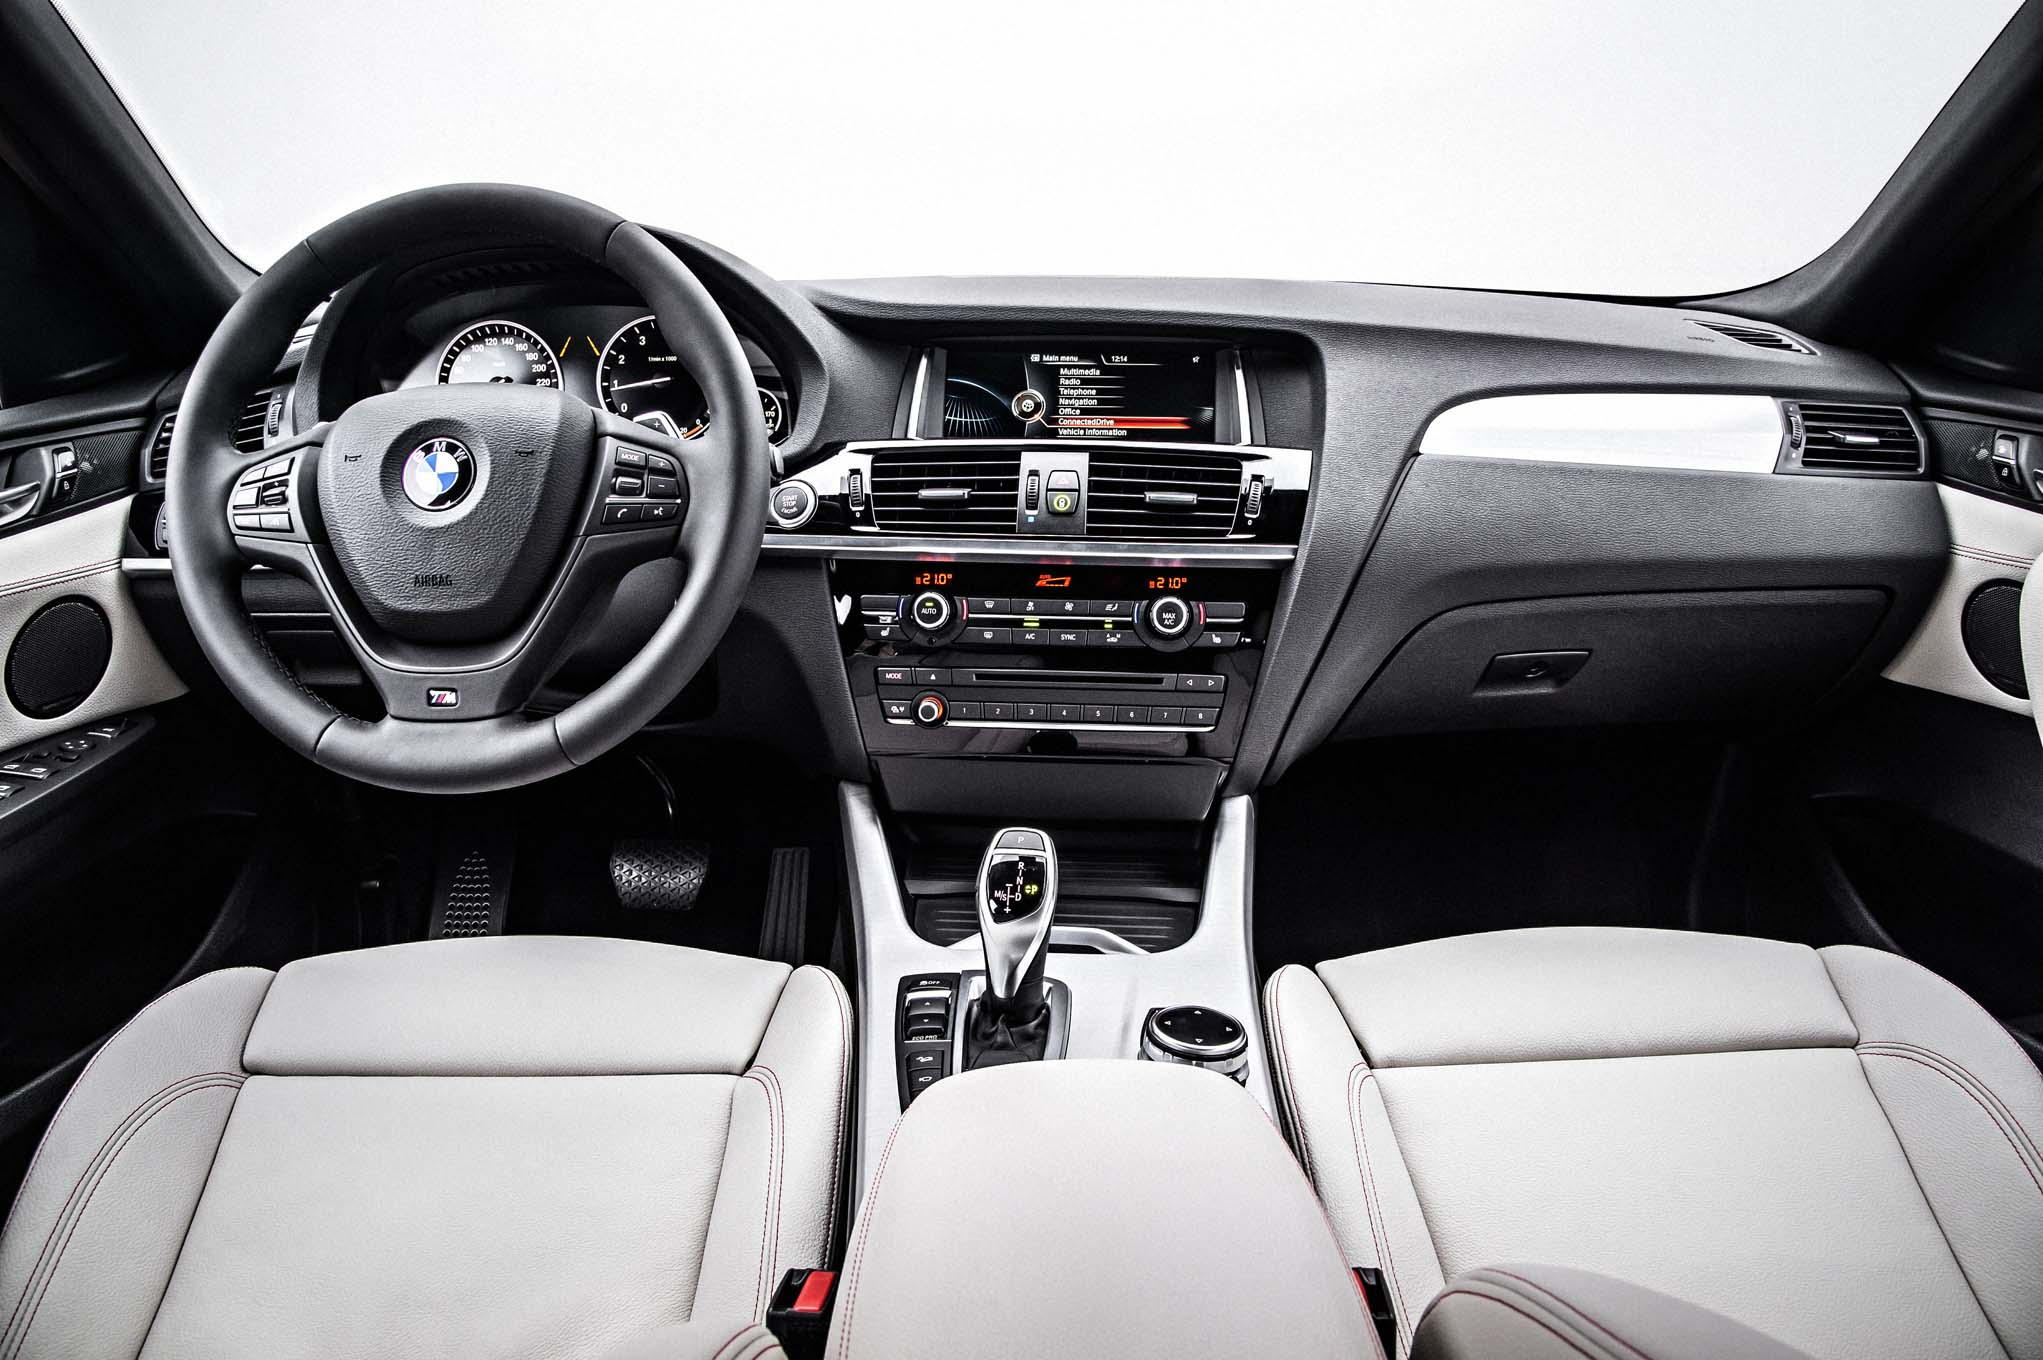 2015 Bmw X4 Dashboard And Cockpit (Photo 1 of 13)